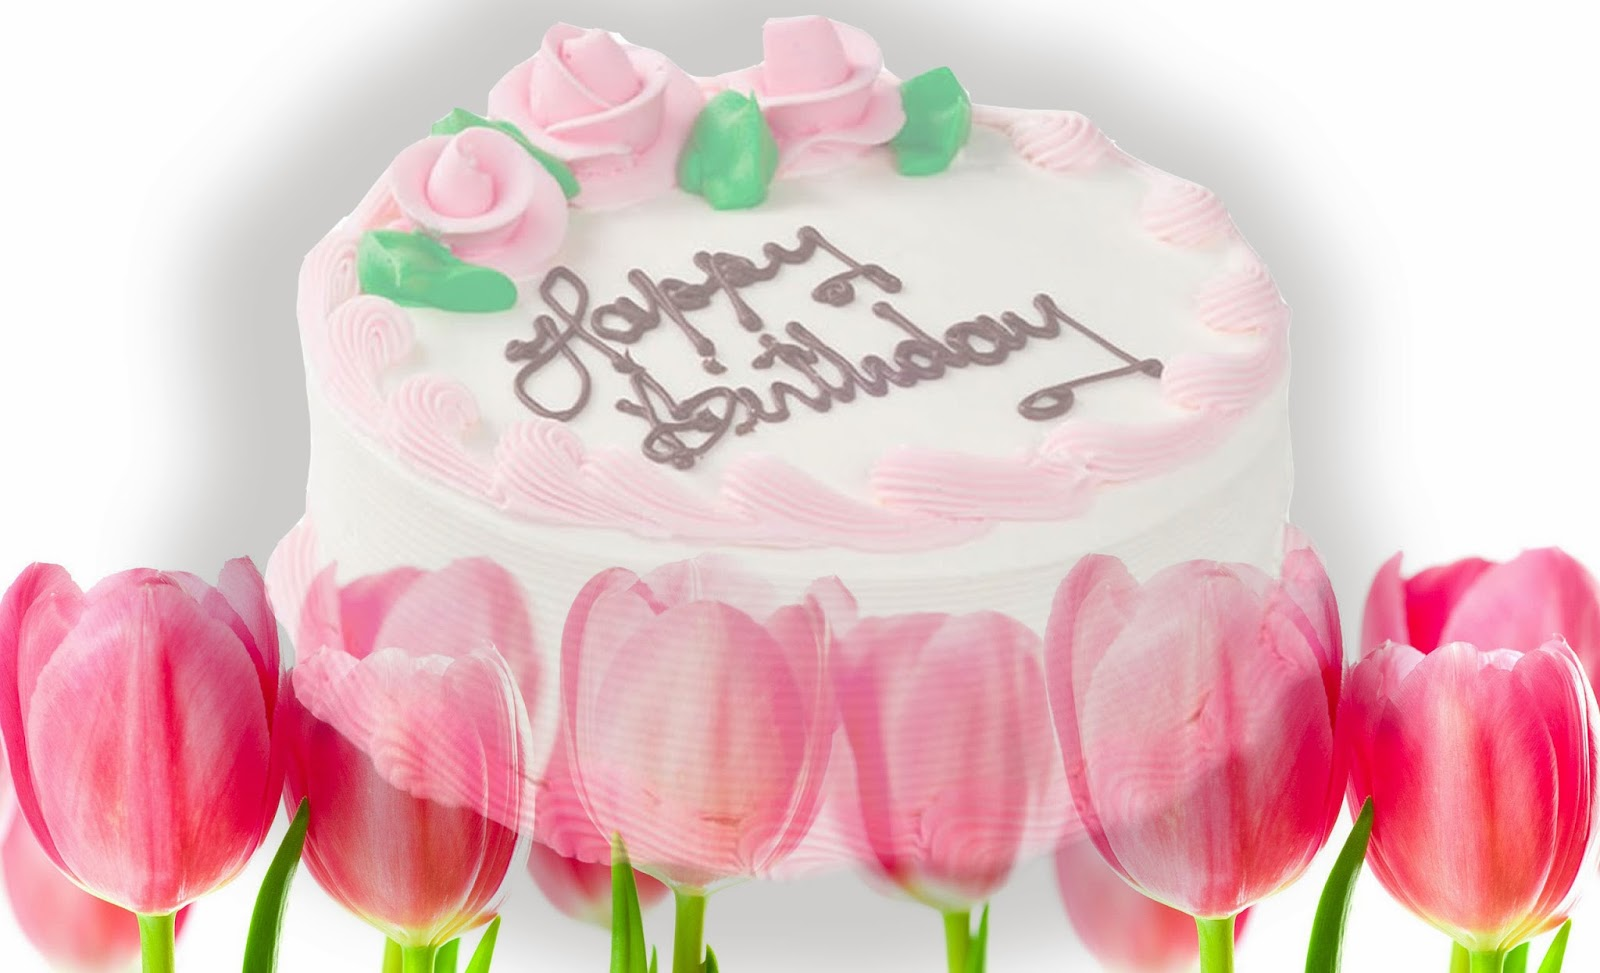 happy birthday wishes pictures free download ; flower-happy-birthday-cake-wallpaper